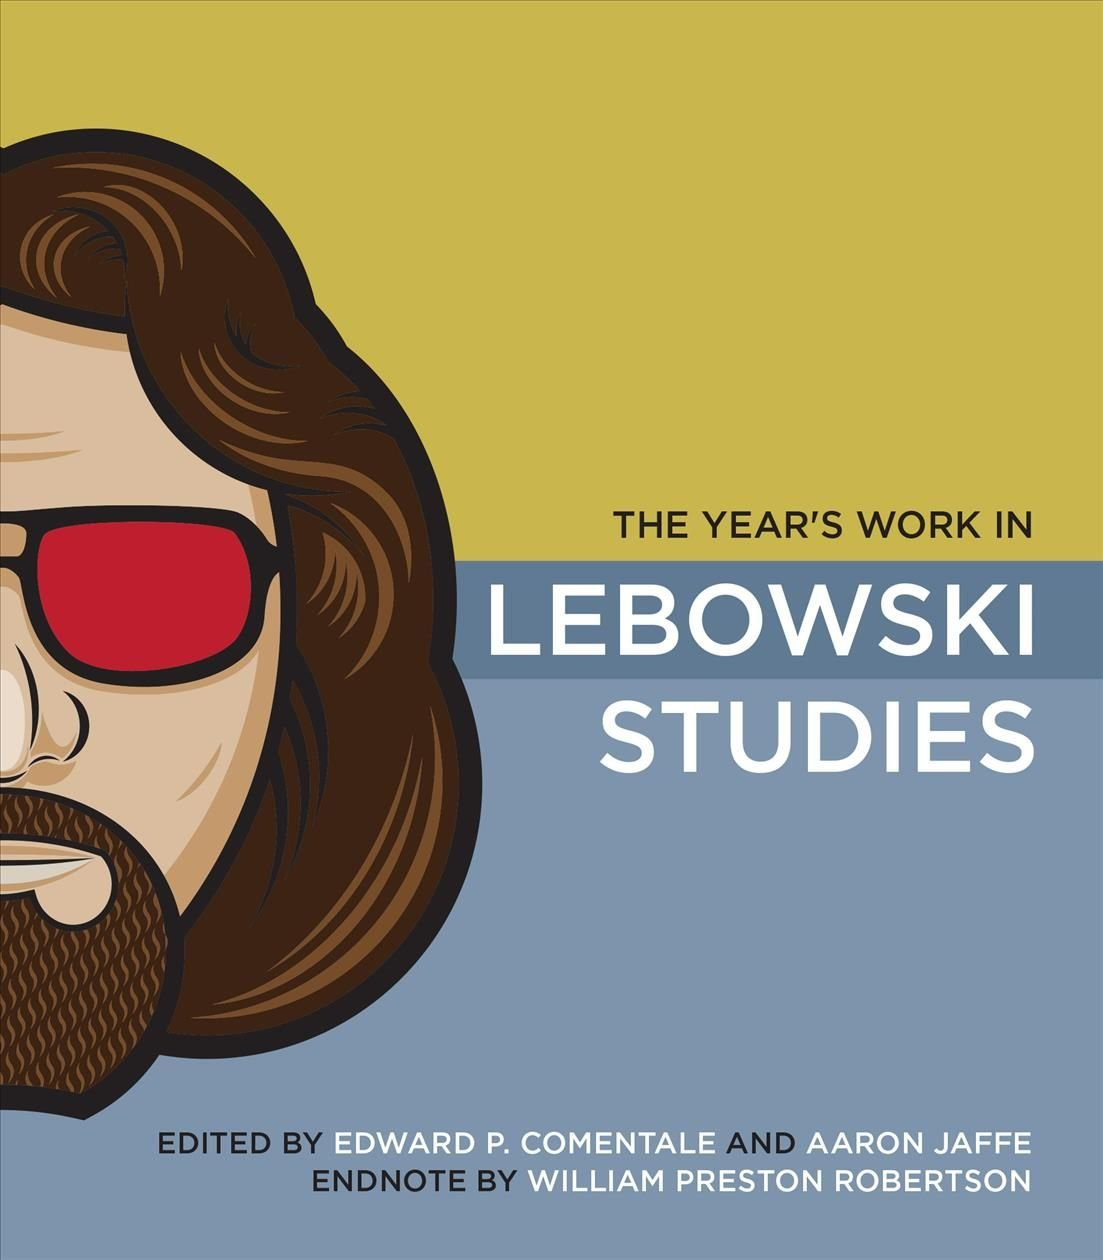 The Year's Work in Lebowski Studies - Edward P. Comentale